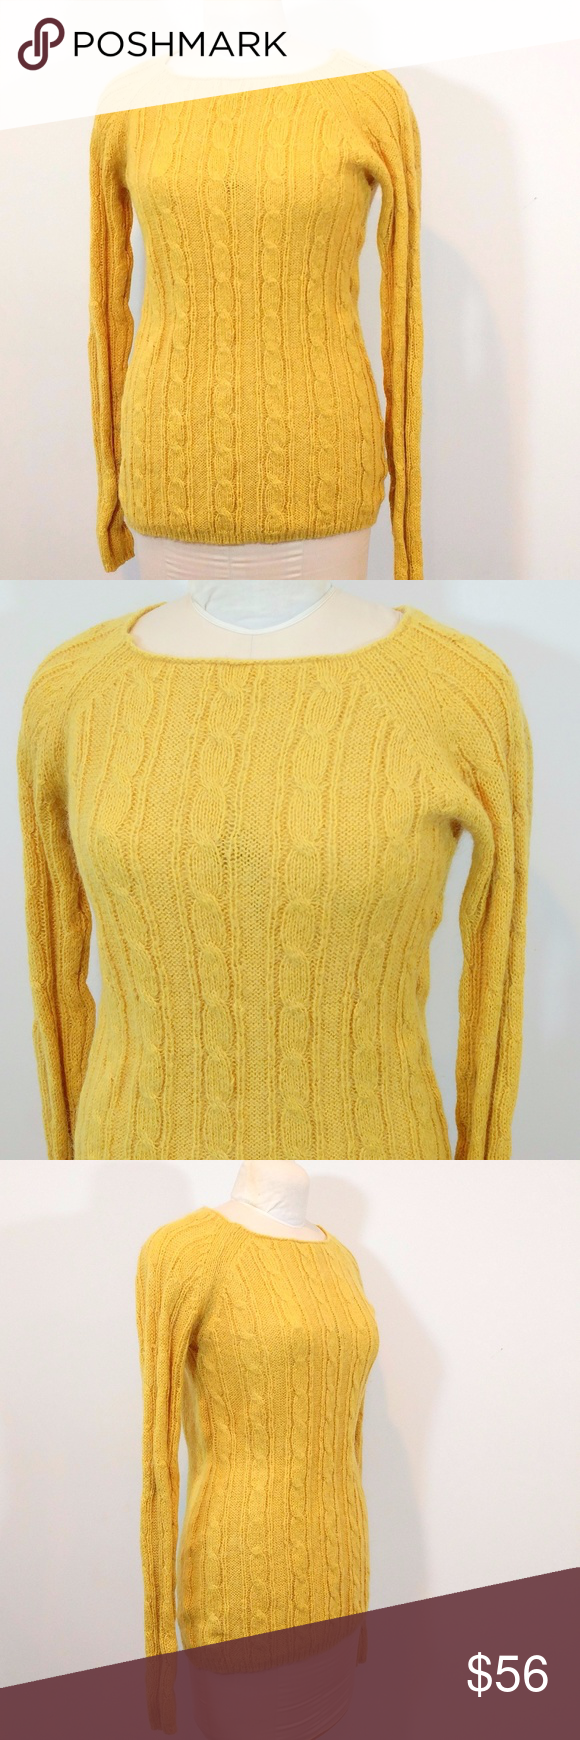 J. Crew Wool Blend Cable Knit Sweater XL | Yellow sweater, Cable ...